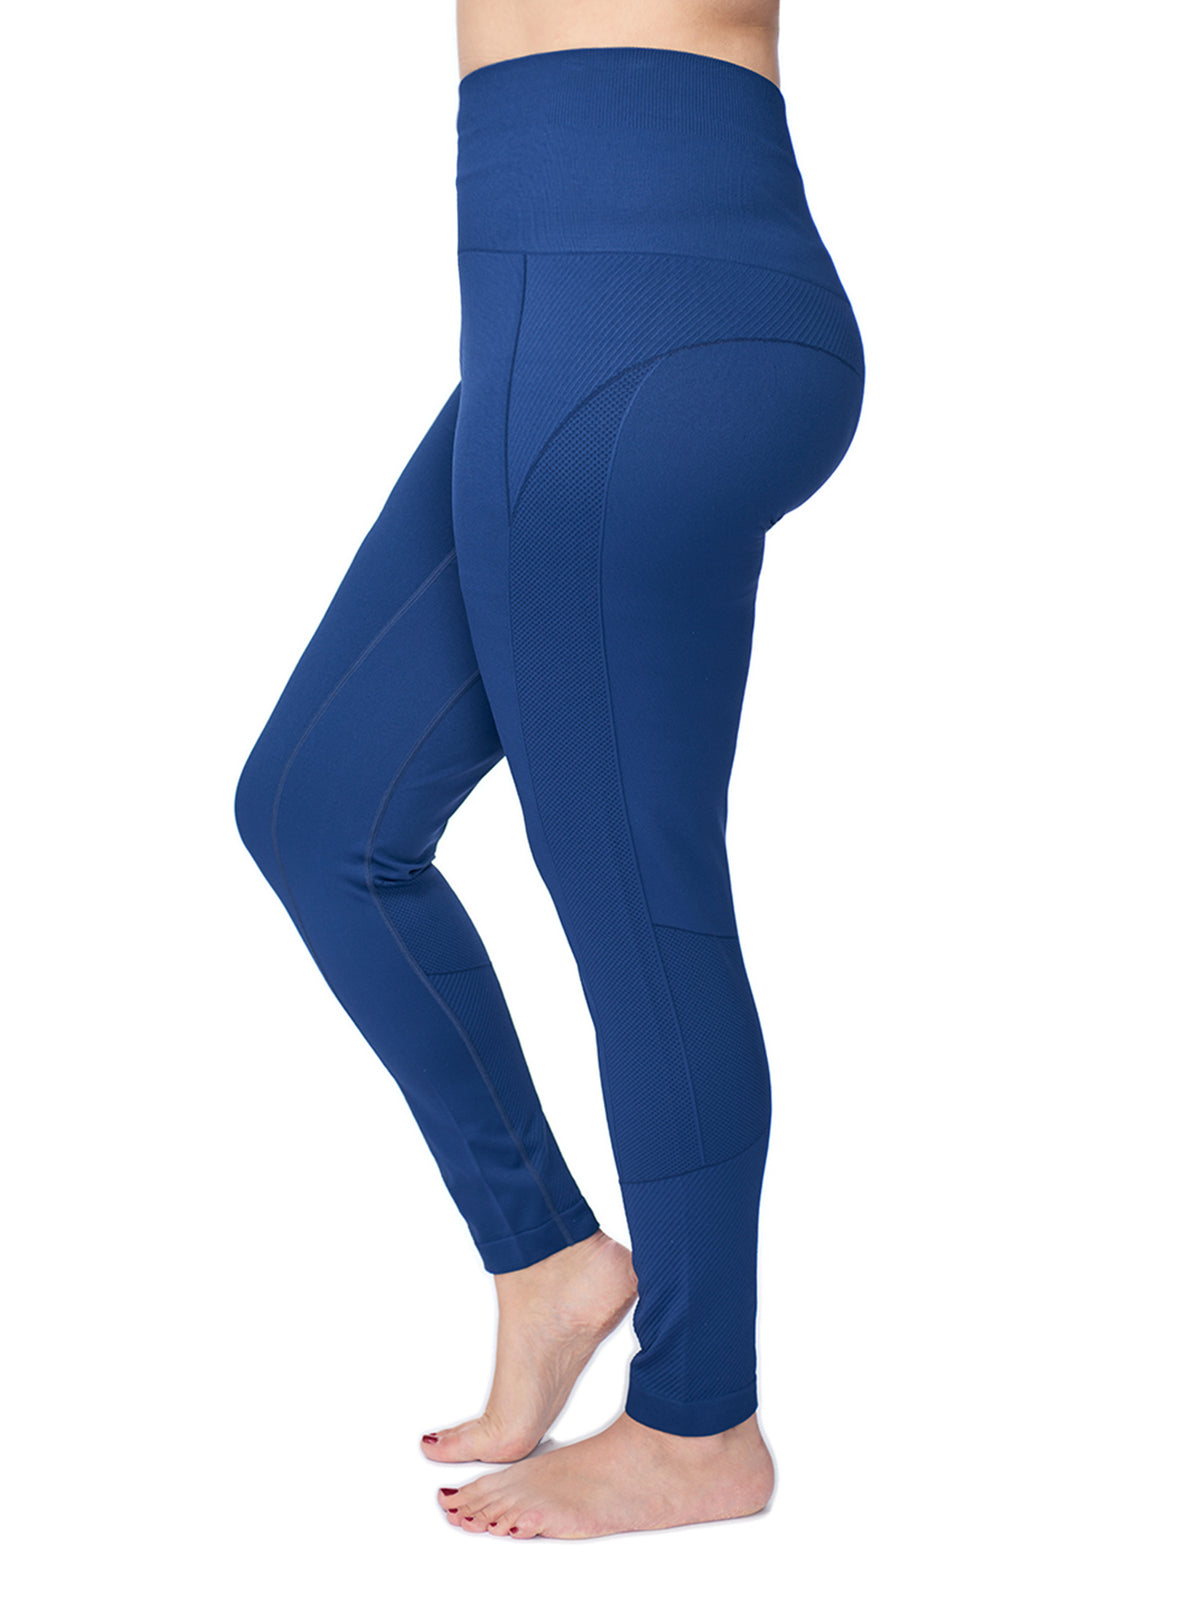 76a218ec1e0bc2 Women's Plus Active Seamless High Impact Fitness Legging with Stretch –  Under Control